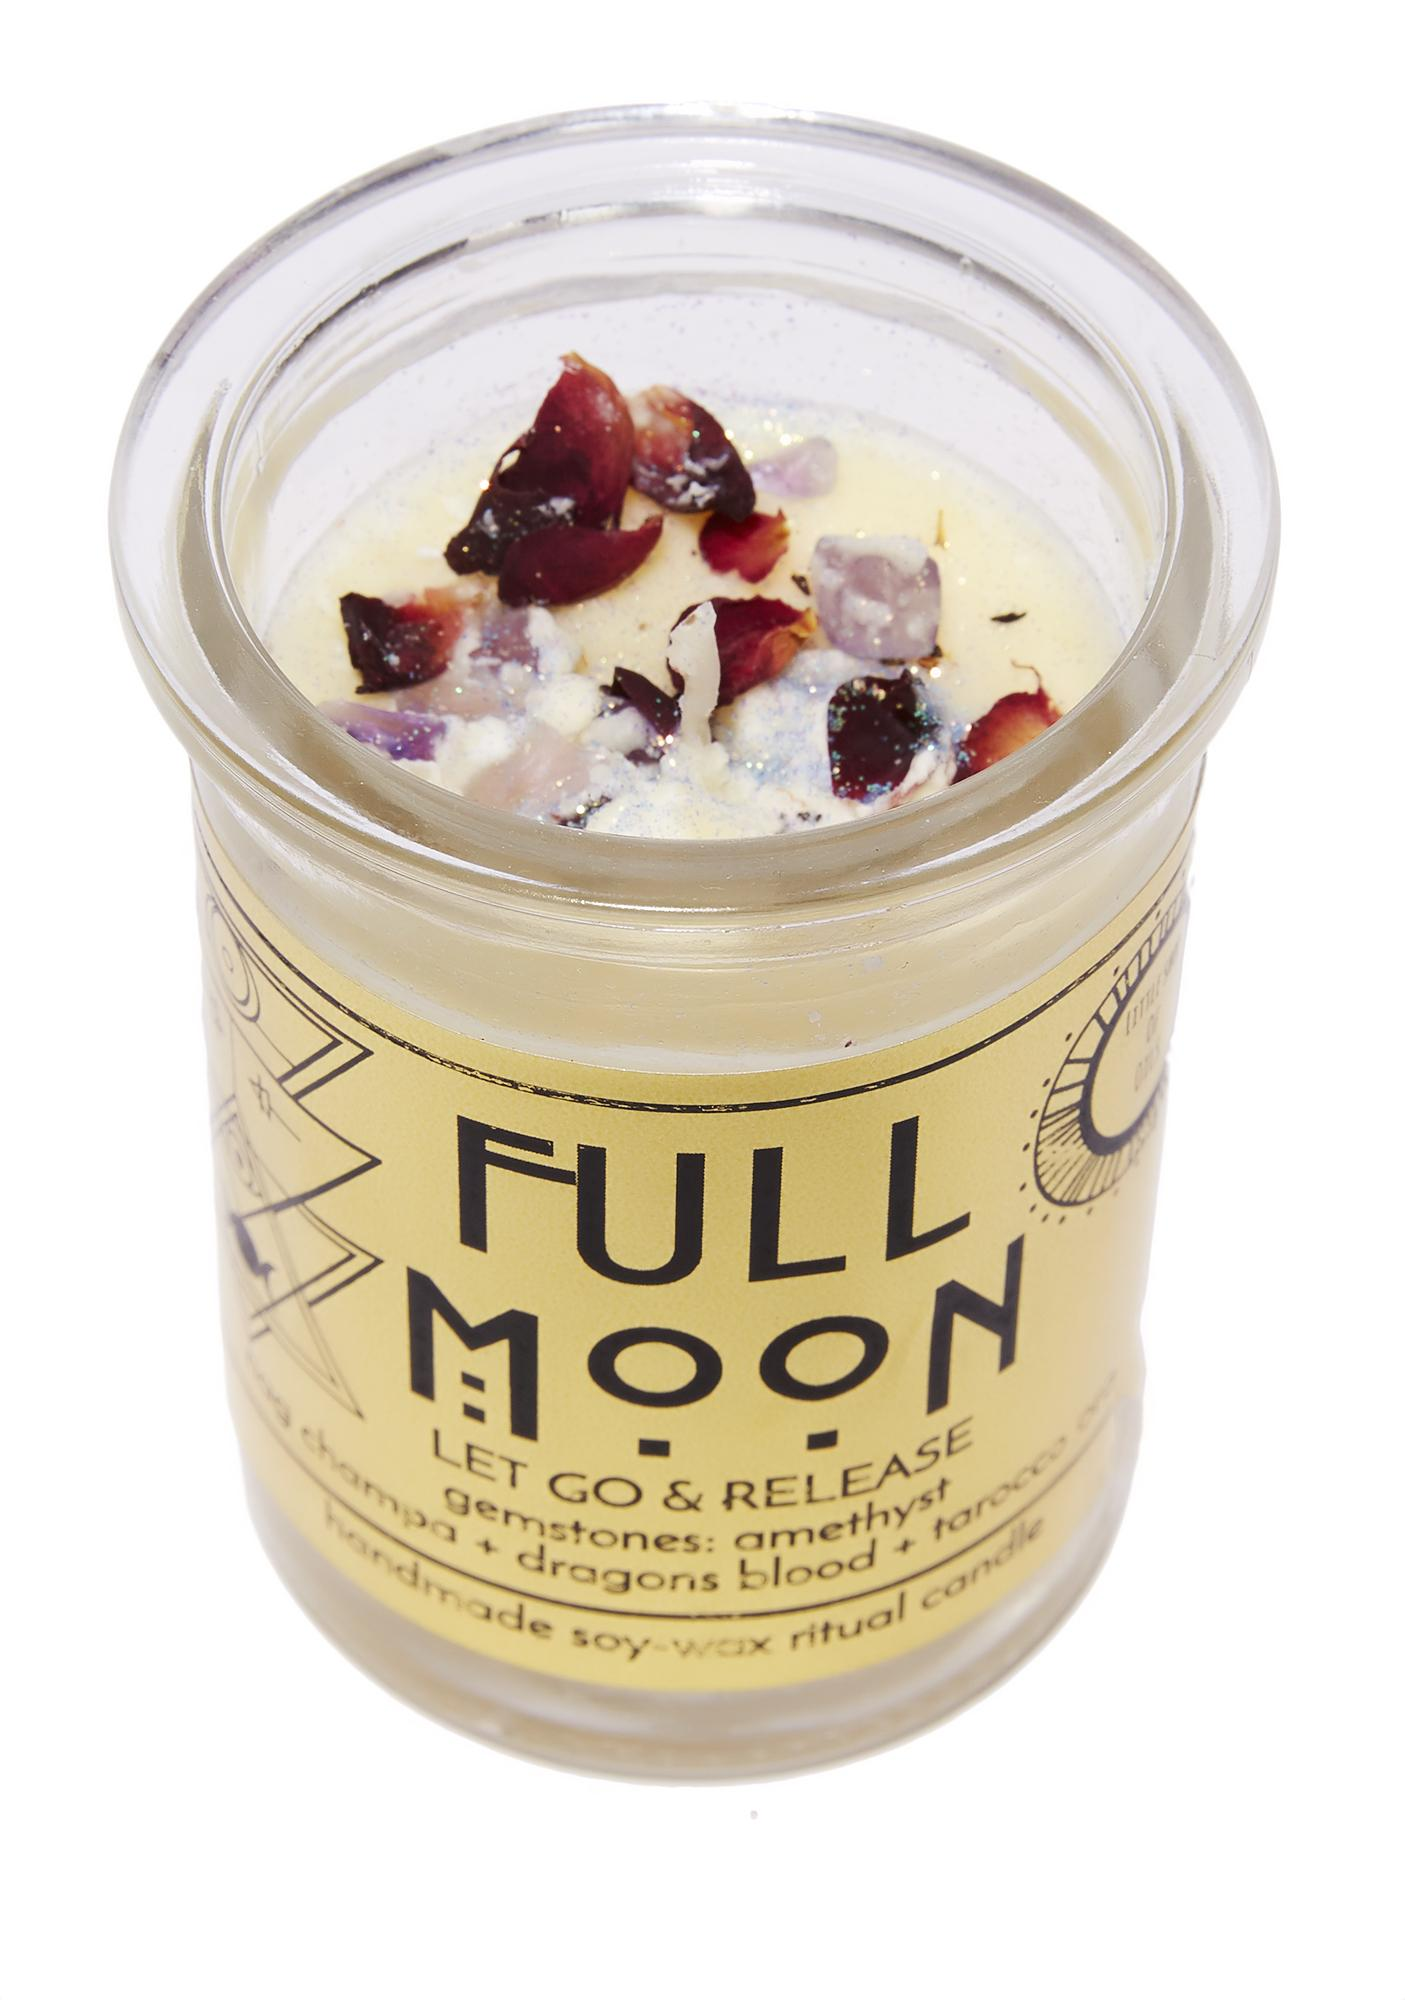 Little Shop of Oils Full Moon Ritual Candle